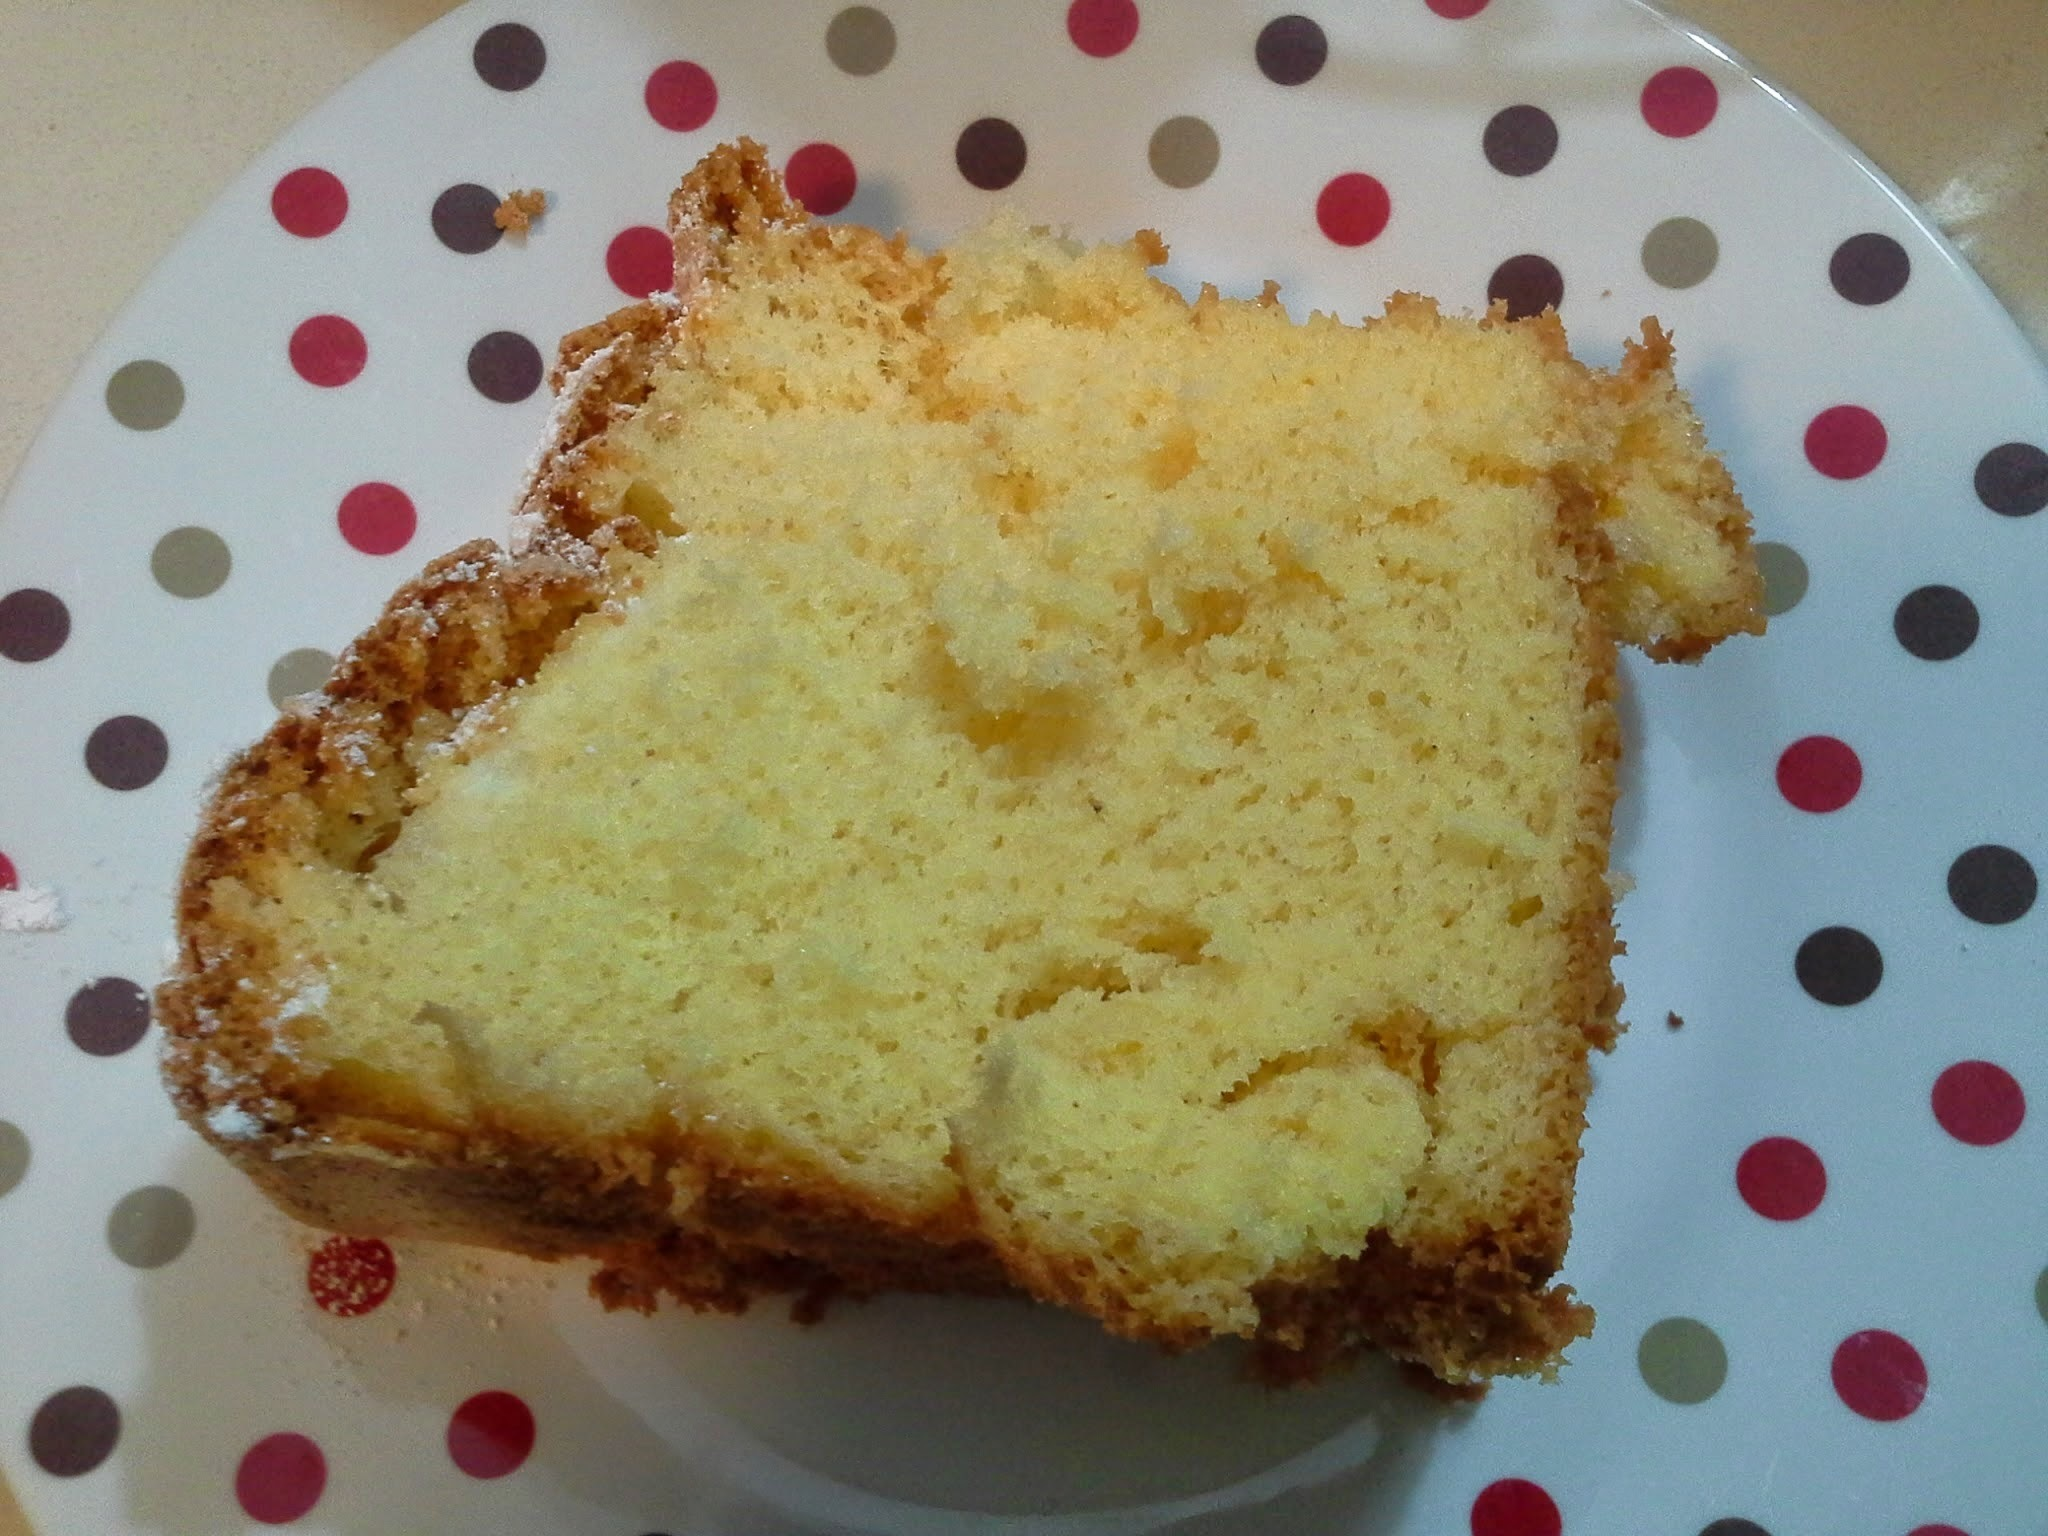 Custard Chiffon Cake - MMCC - It's not perfect but that's ok because that's what baking is all about!